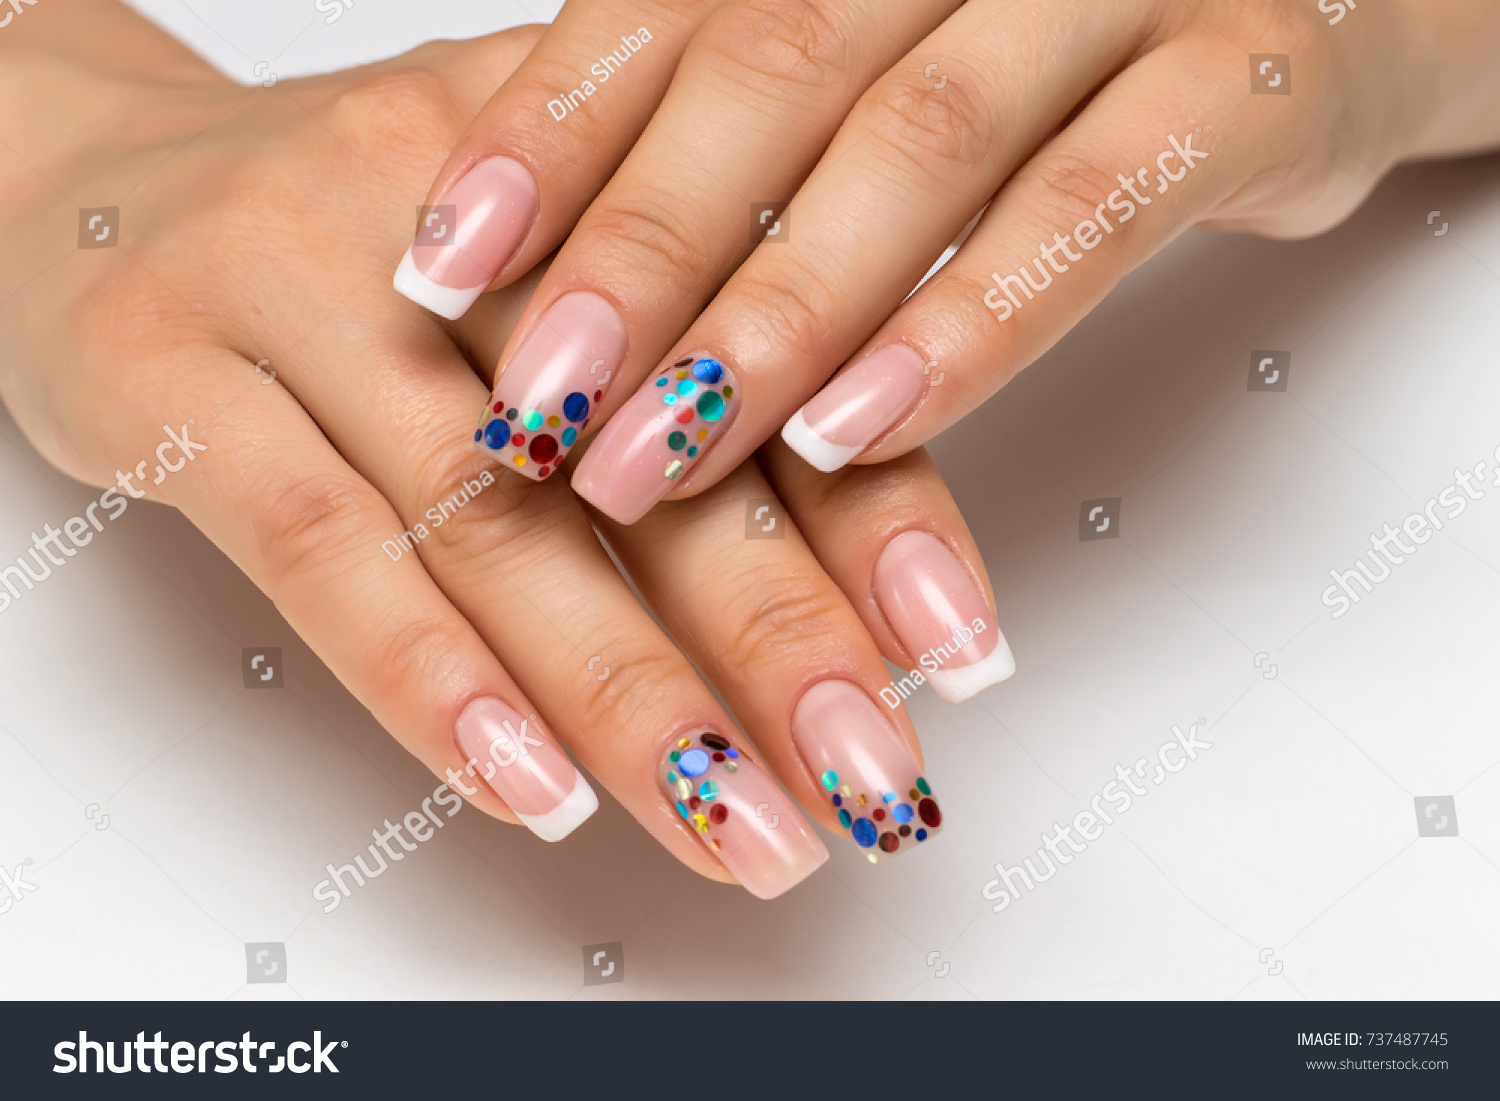 Wedding French White Manicure Sparkles Confetti Stock Photo (Royalty ...